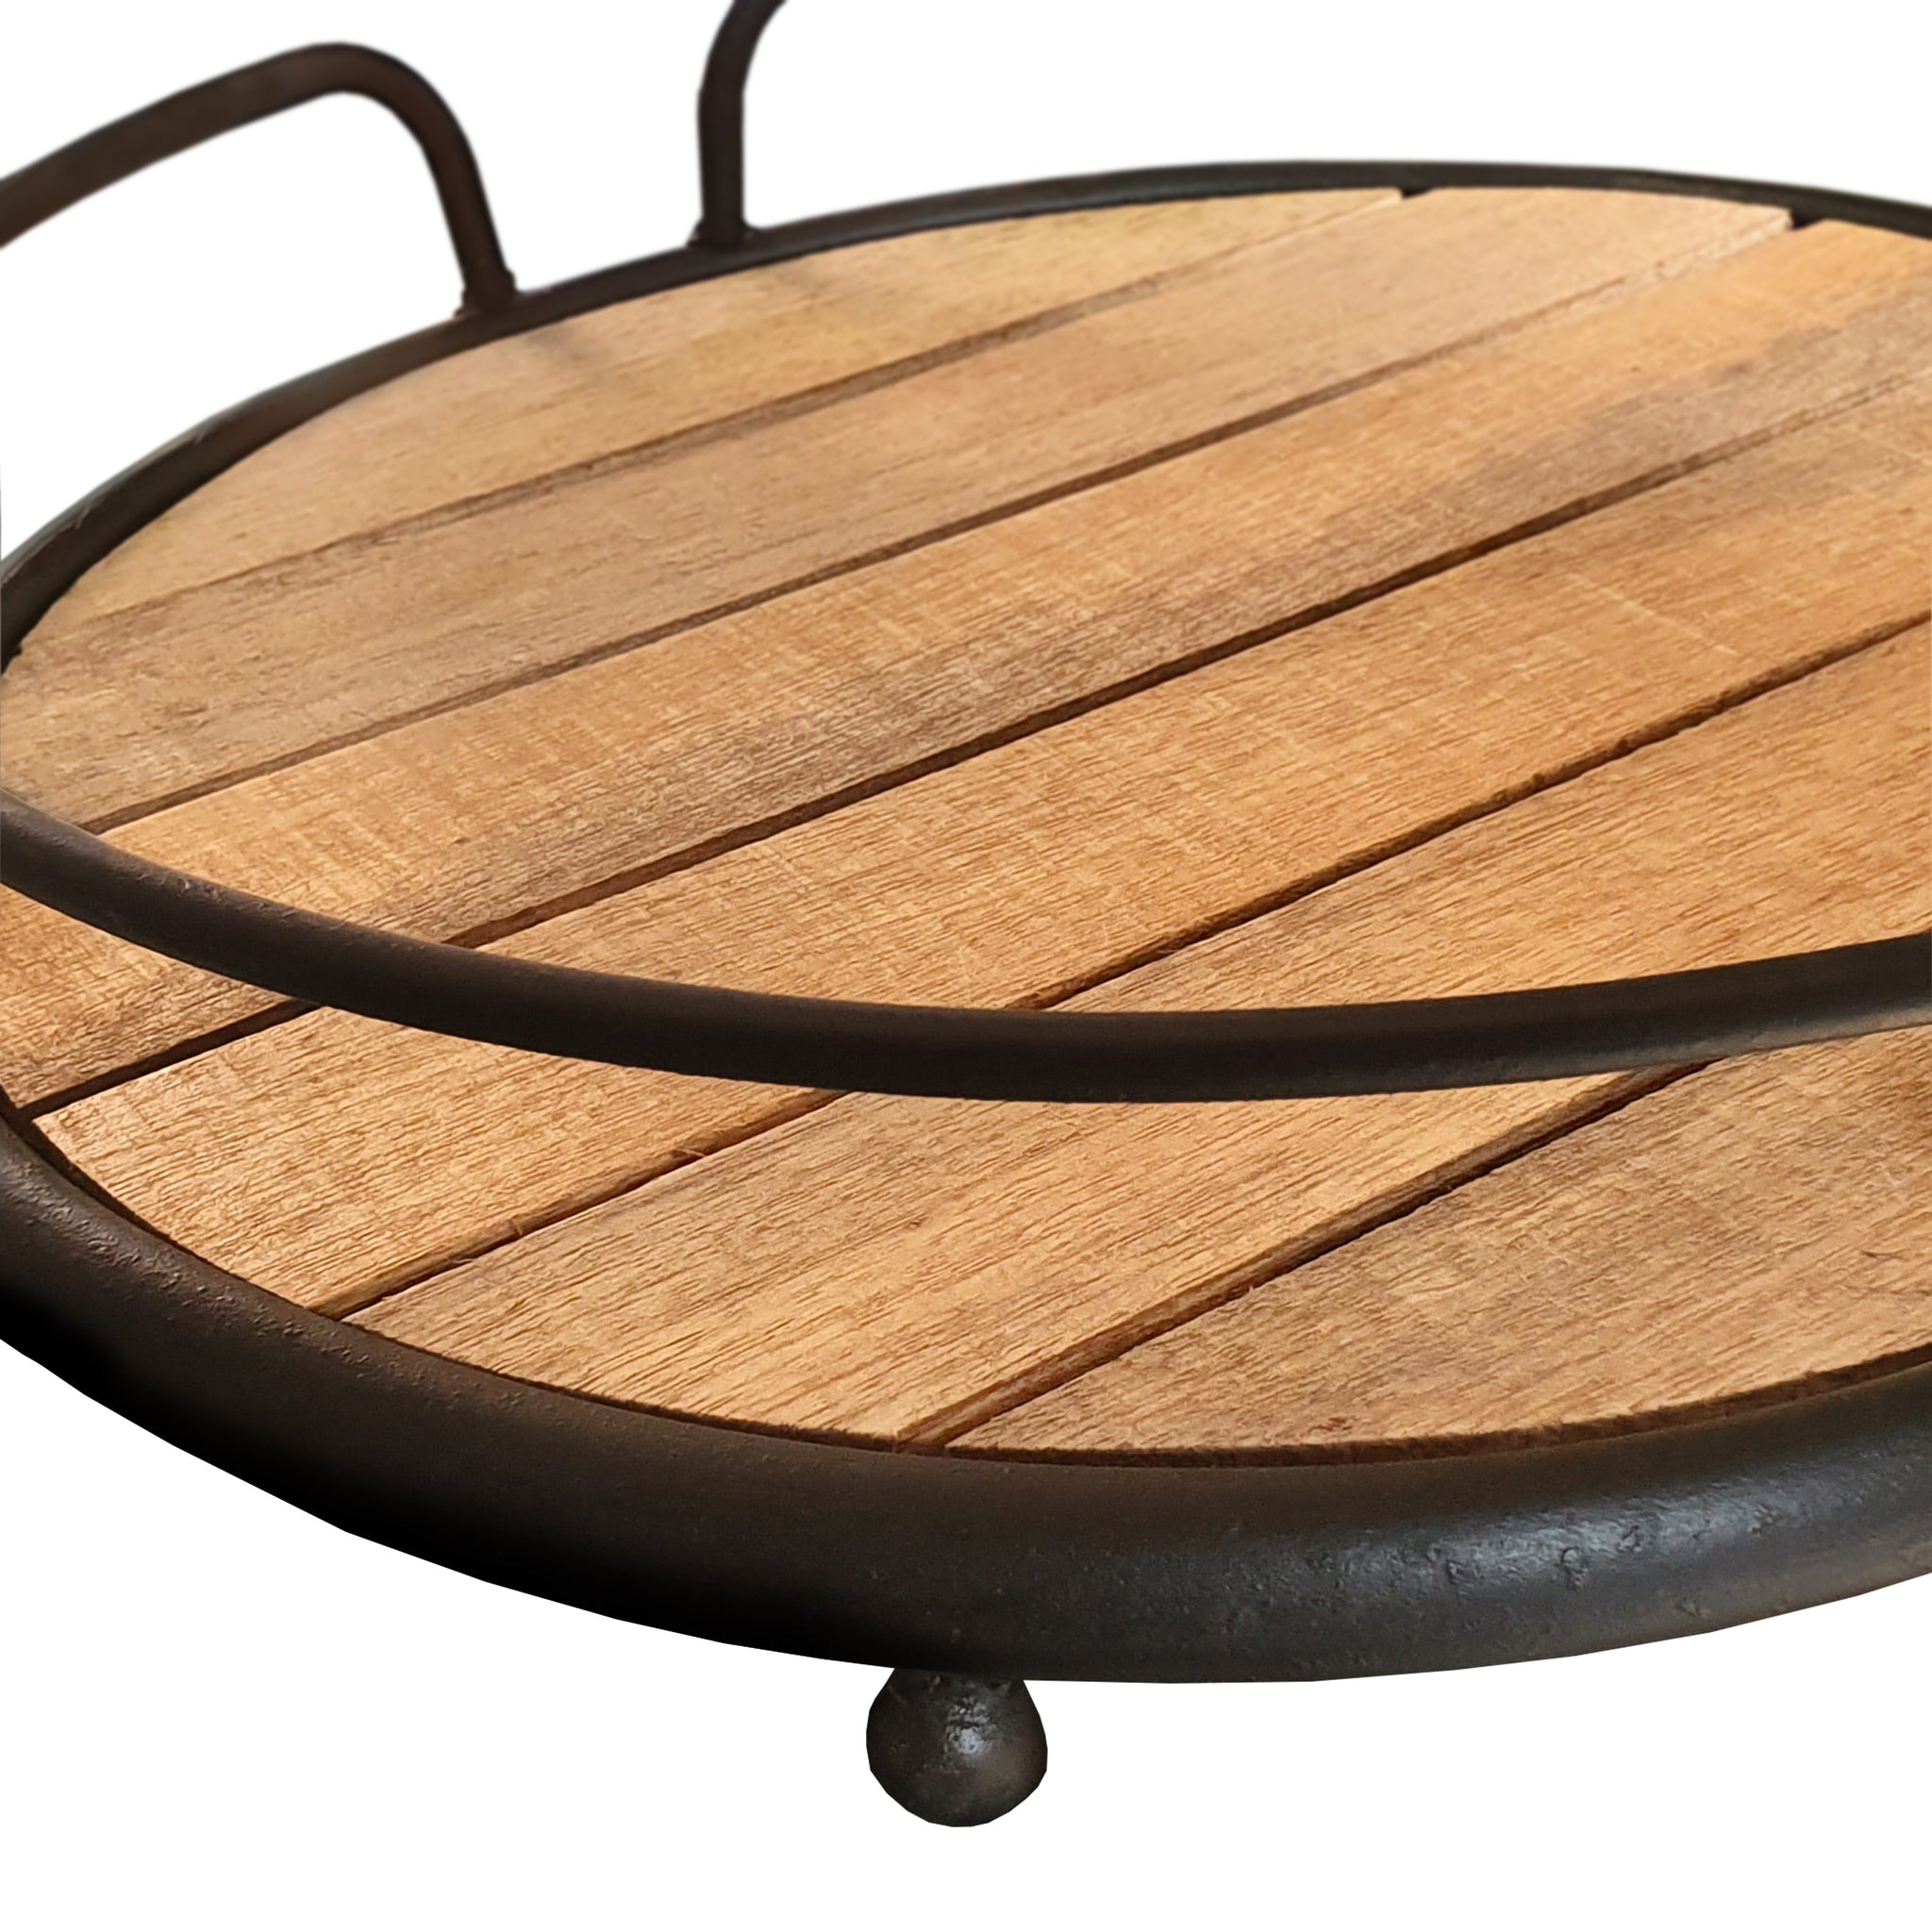 Benzara BM195136 Round Metal Frame Tray with Plank Style Wooden Base